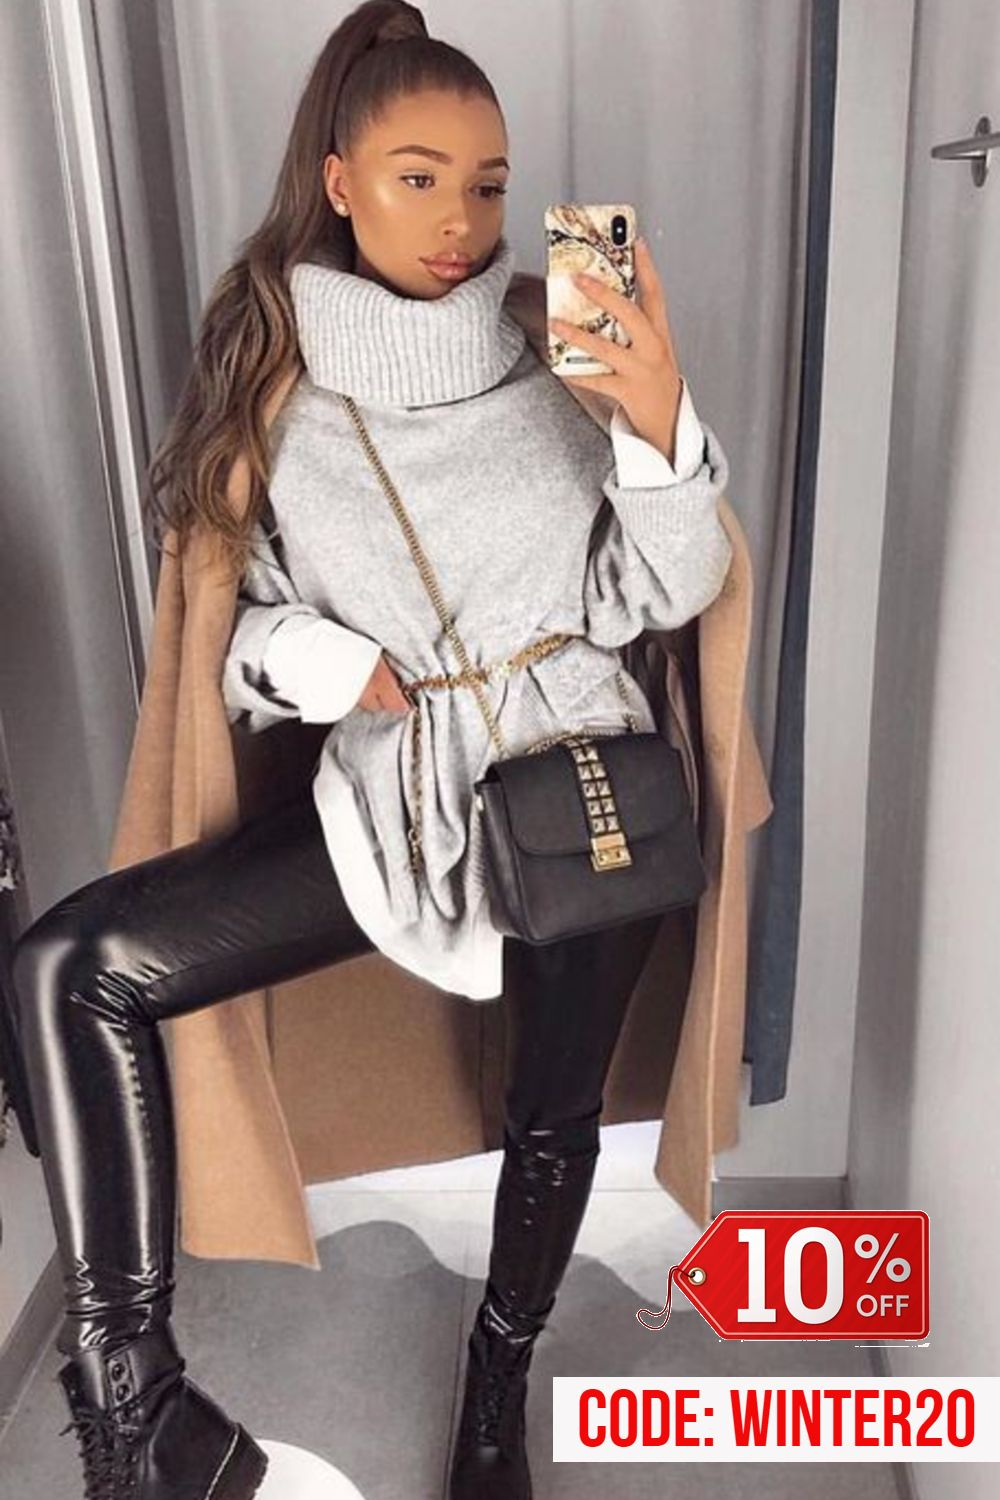 Women's Leather Pants Casual Winter Fashion Outfit